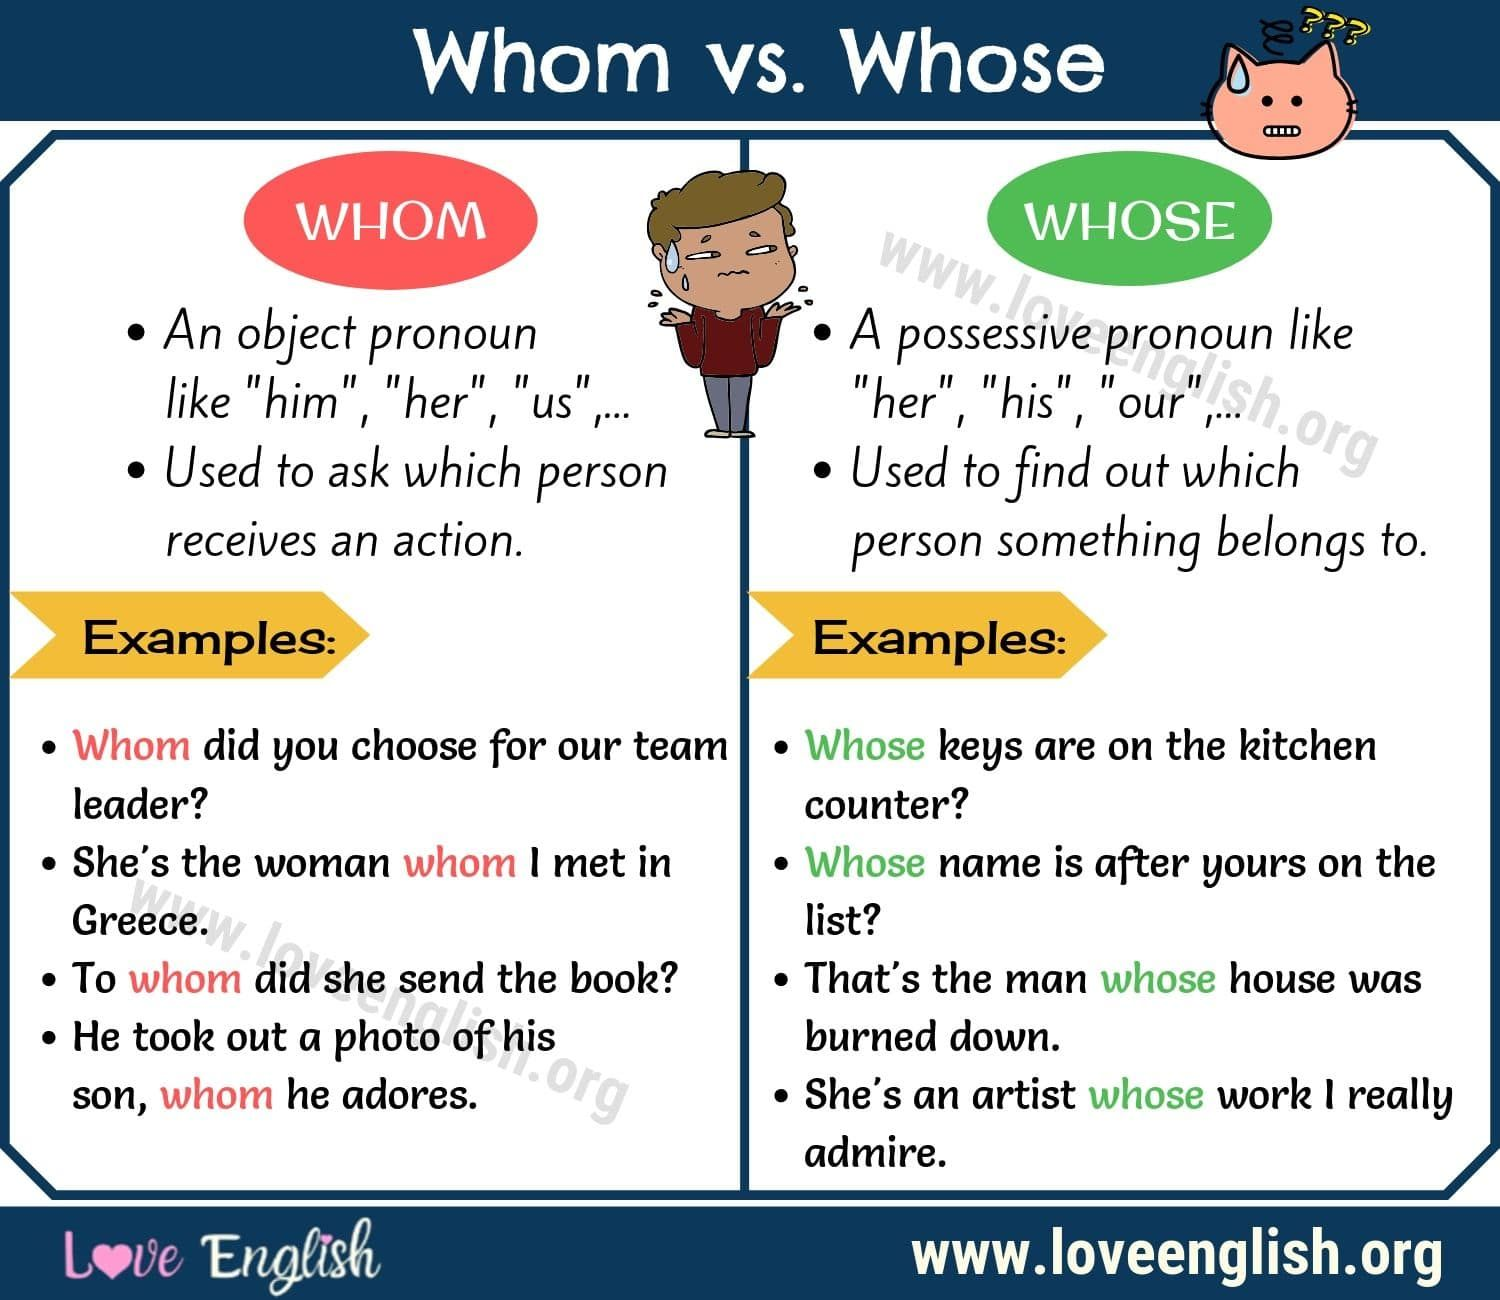 Whom Vs Whose How To Use Whom And Whose In A Sentence